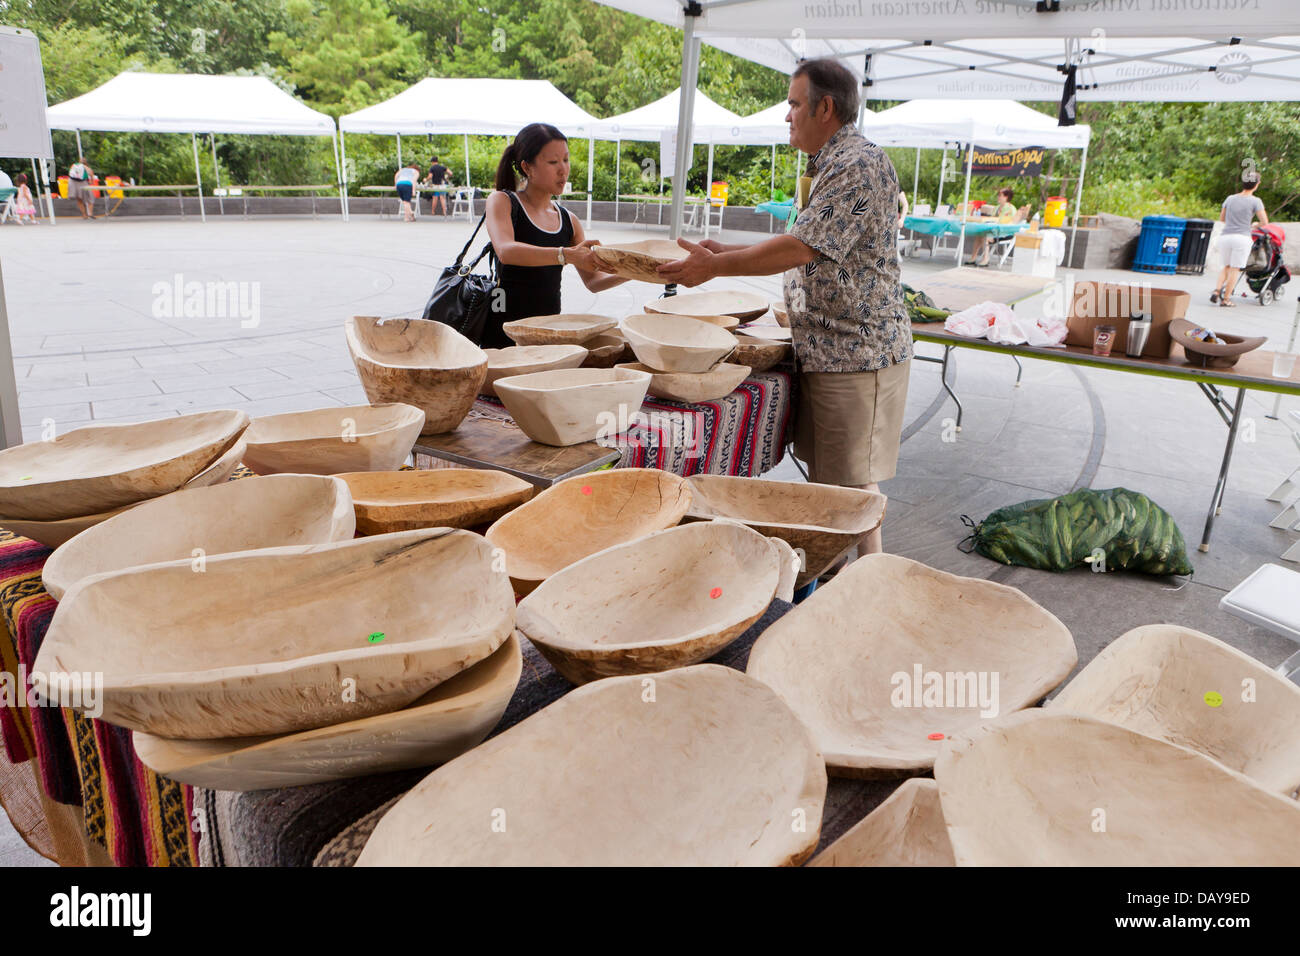 Man Selling Hand Carved Wooden Bowls Stock Photo 58377829 Alamy